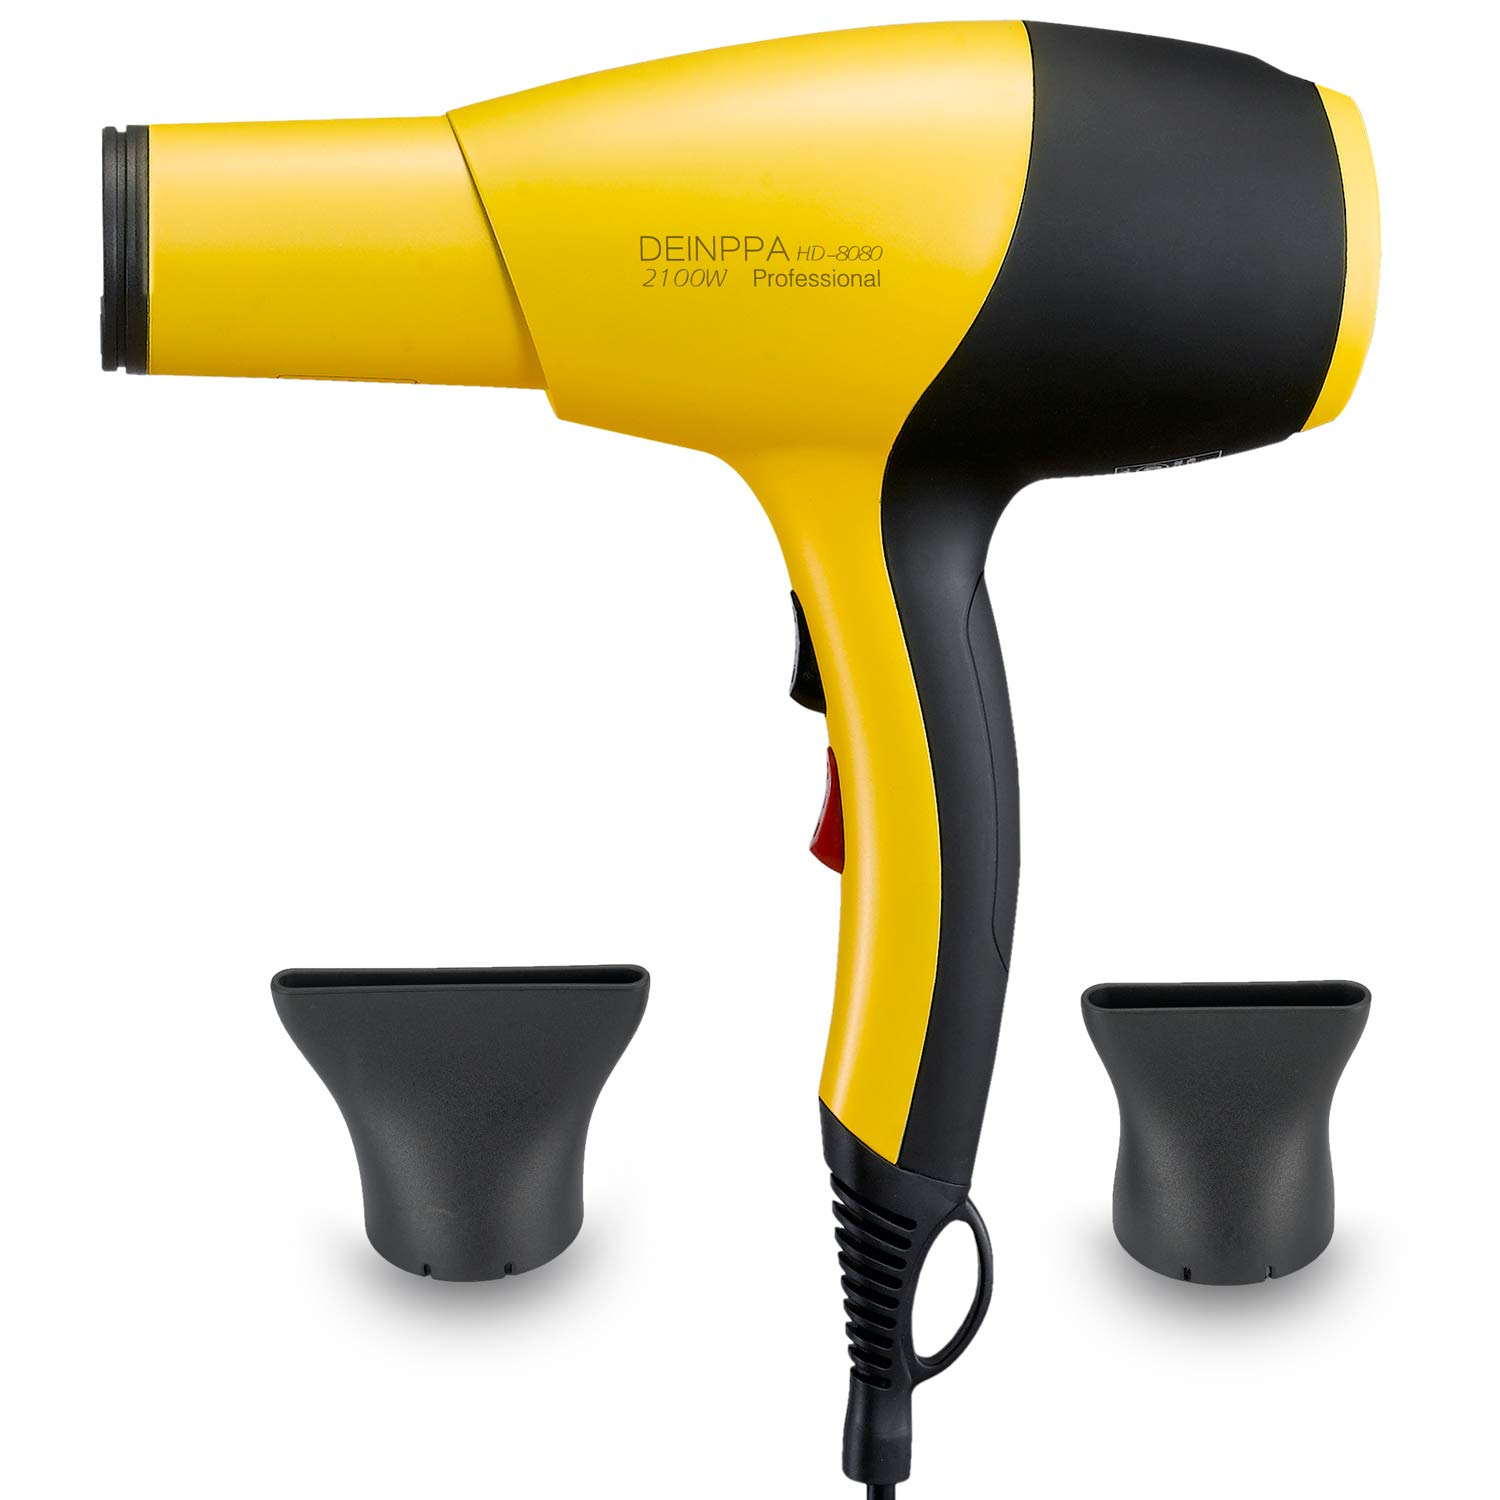 Deinppa Ionic Hair Dryer AC 2100W Professional Salon Blow Dryer Low Noise Fast Dry with Ceramic Tourmaline Technology With GFCI